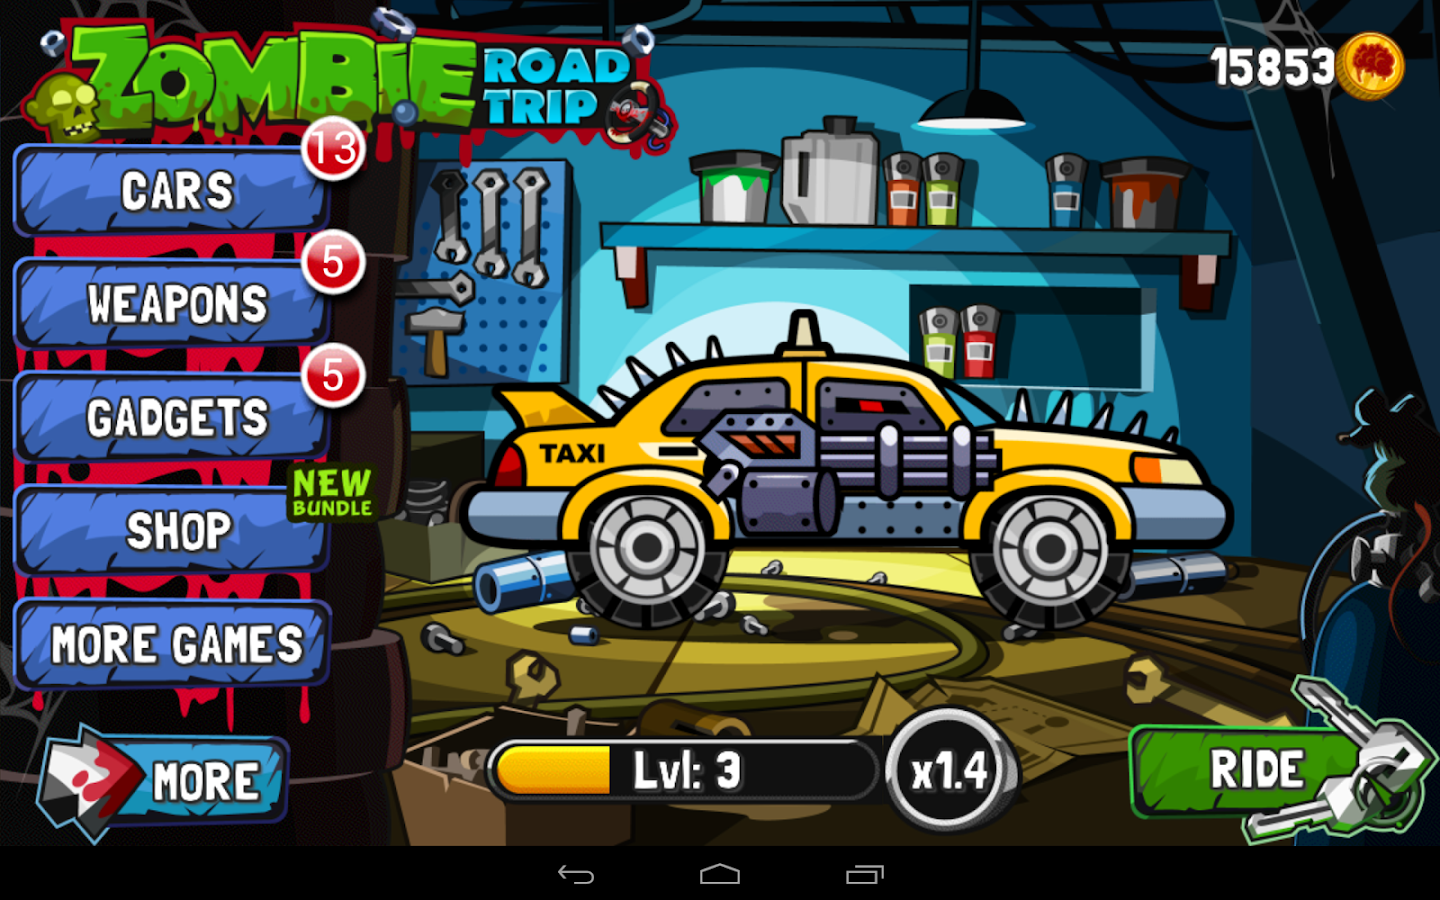 Zombie Road Trip Screenshot 7